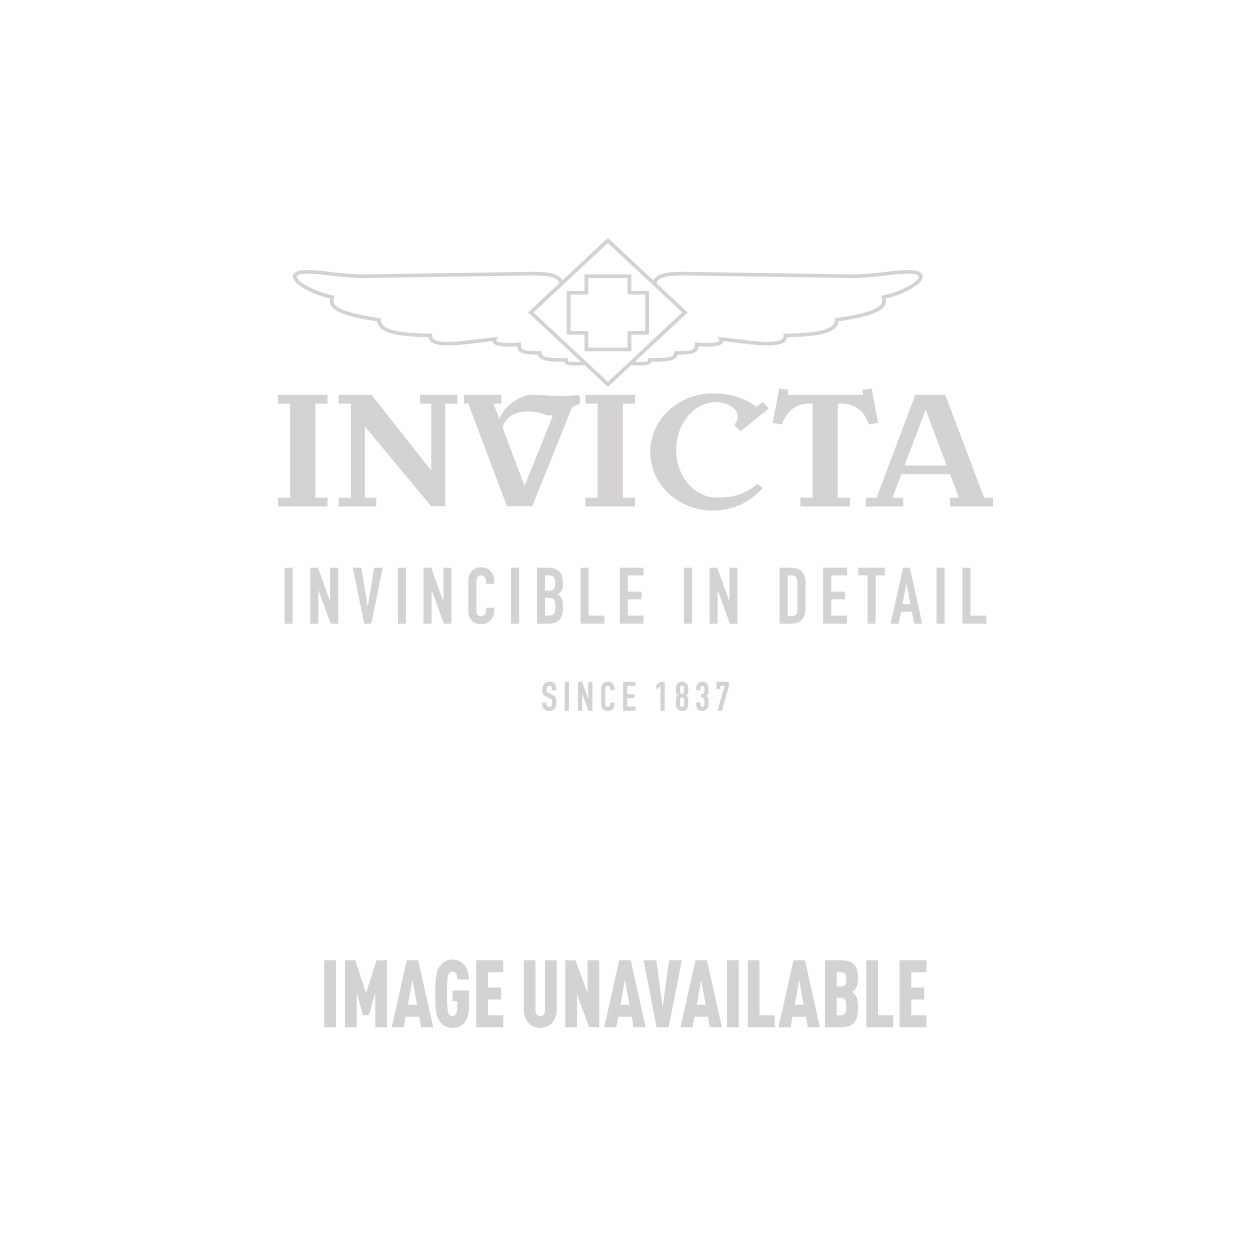 Invicta Coalition Forces Swiss Movement Quartz Watch - Stainless Steel case Stainless Steel band - Model 90274